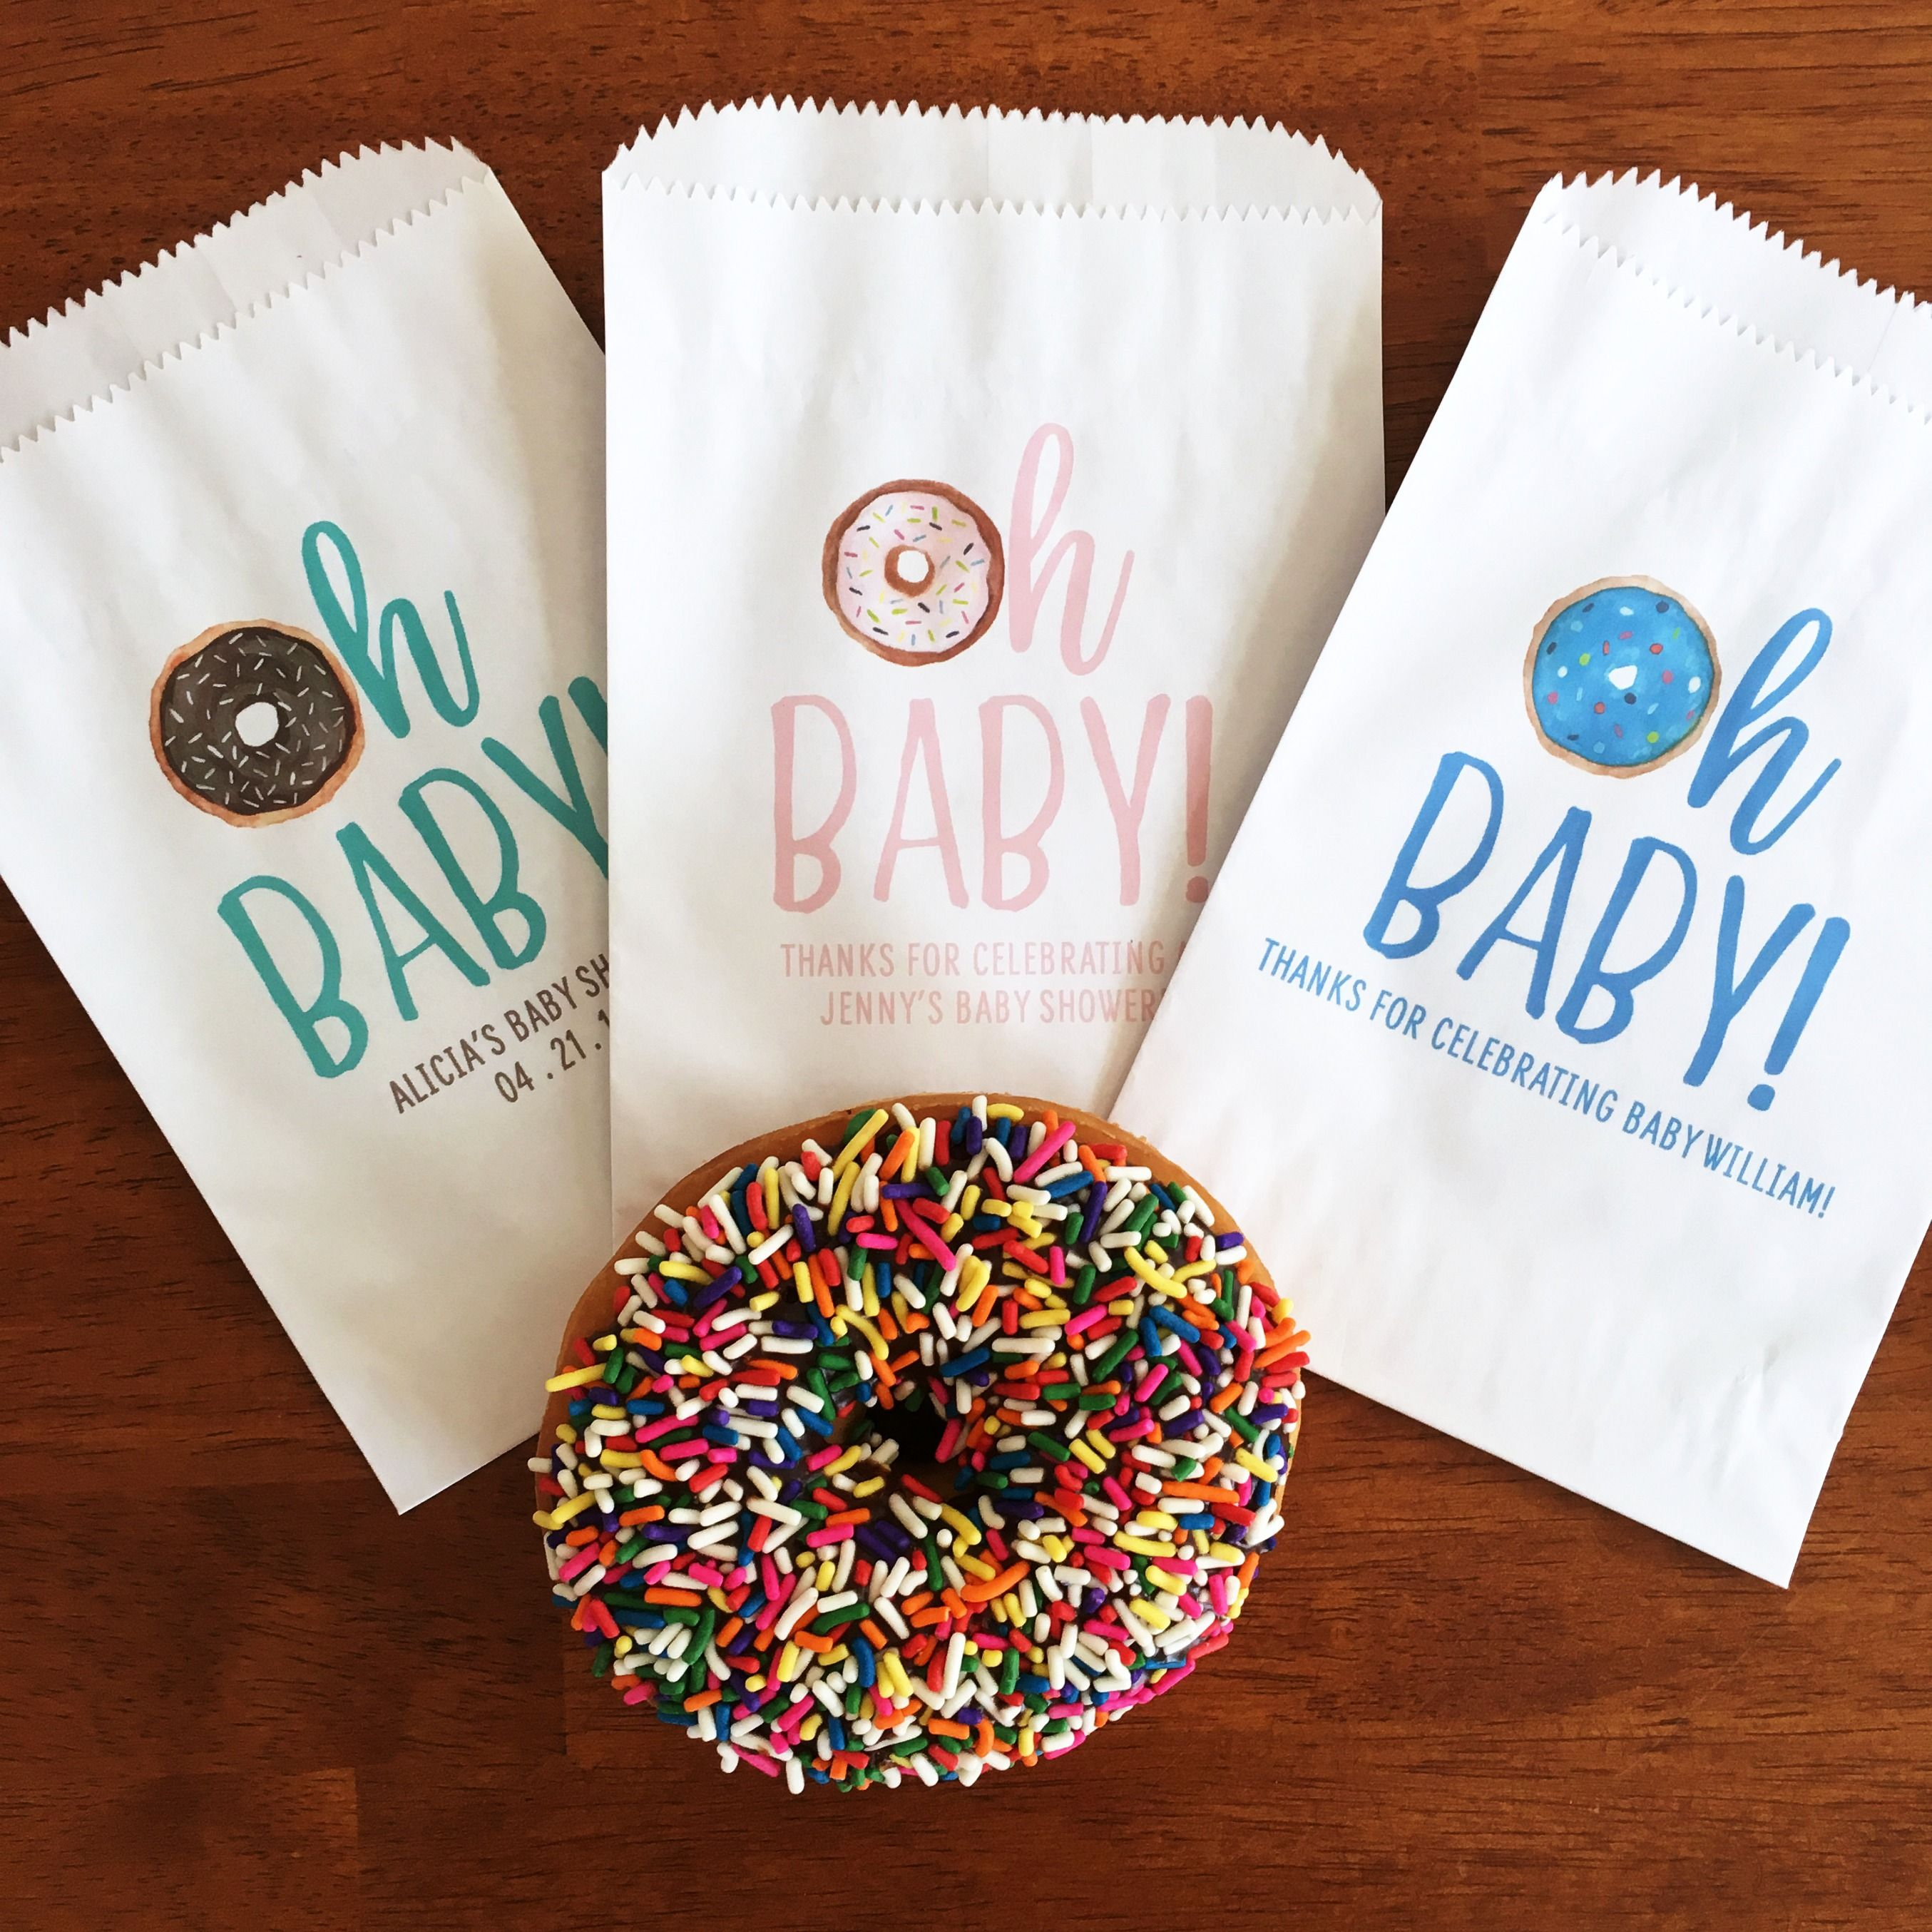 Love These Baby Shower Favors Donut Favor Bags Themed Gender Neutral Sprinkle Oh Treat